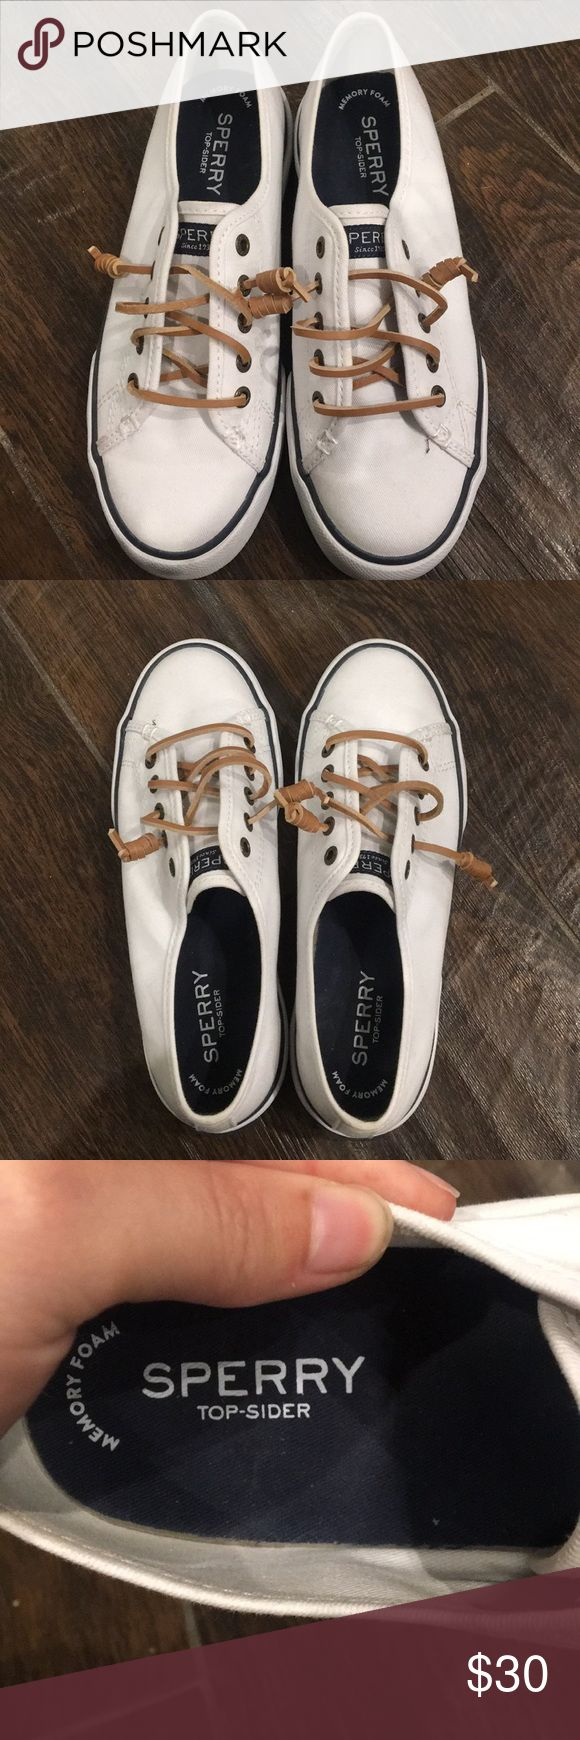 Sperry Sneakers White Sperry sneakers with leather laces only worn once in great condition Sperry Top-Sider Shoes